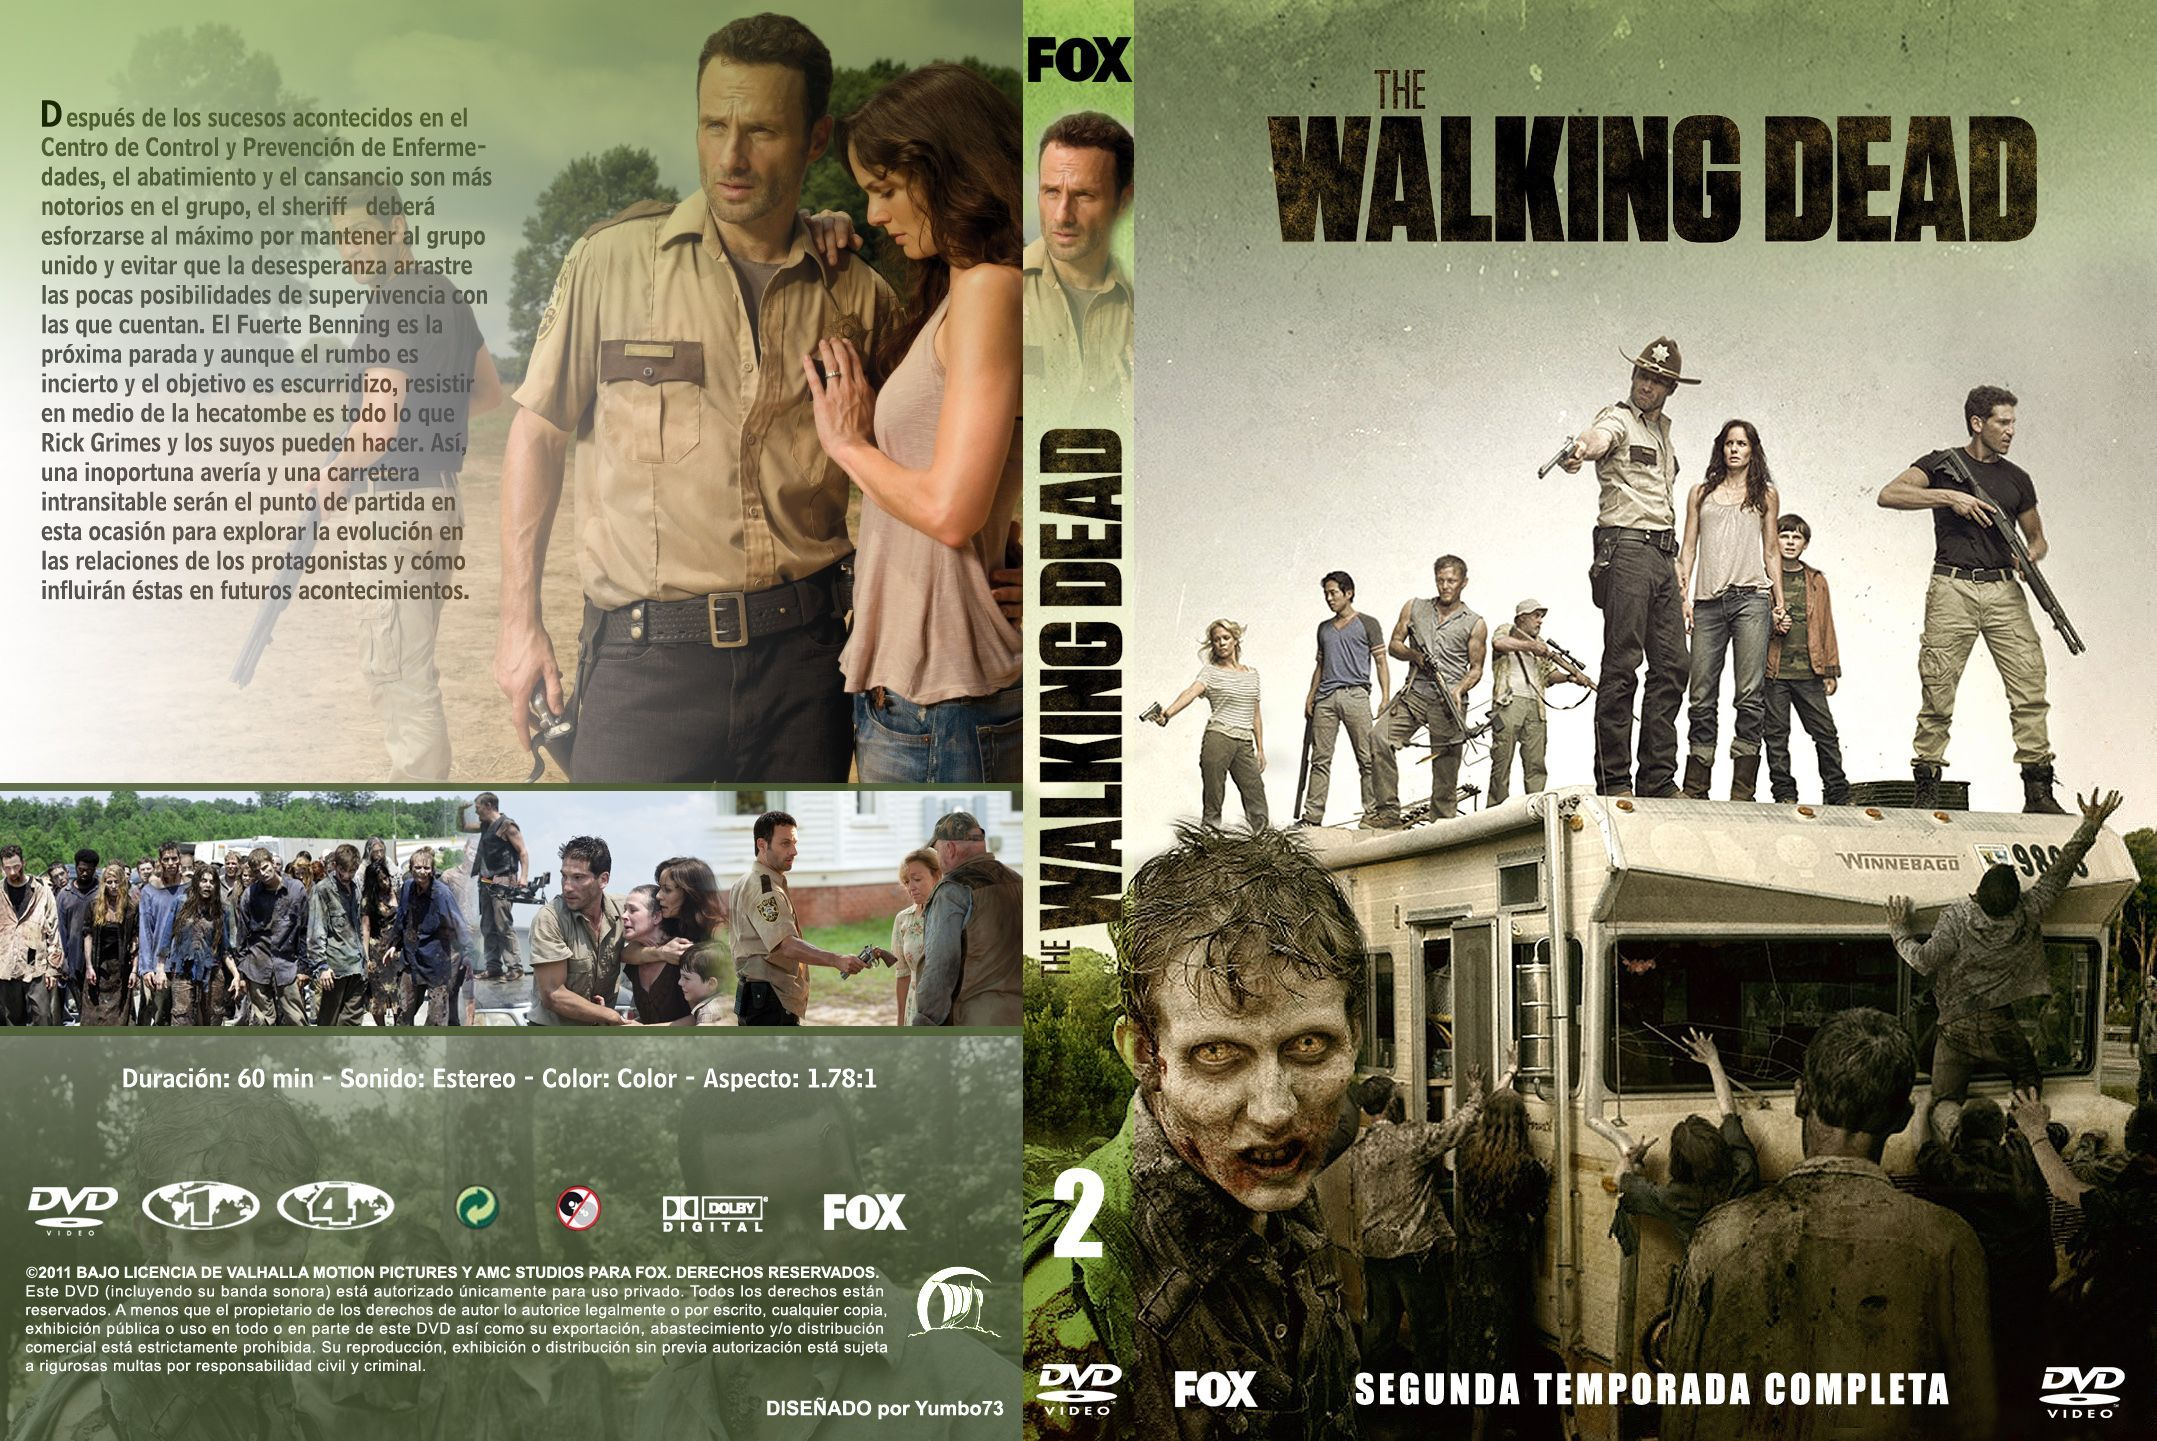 walking dead season 2 dvd | The Walking Dead temporada 2 ...